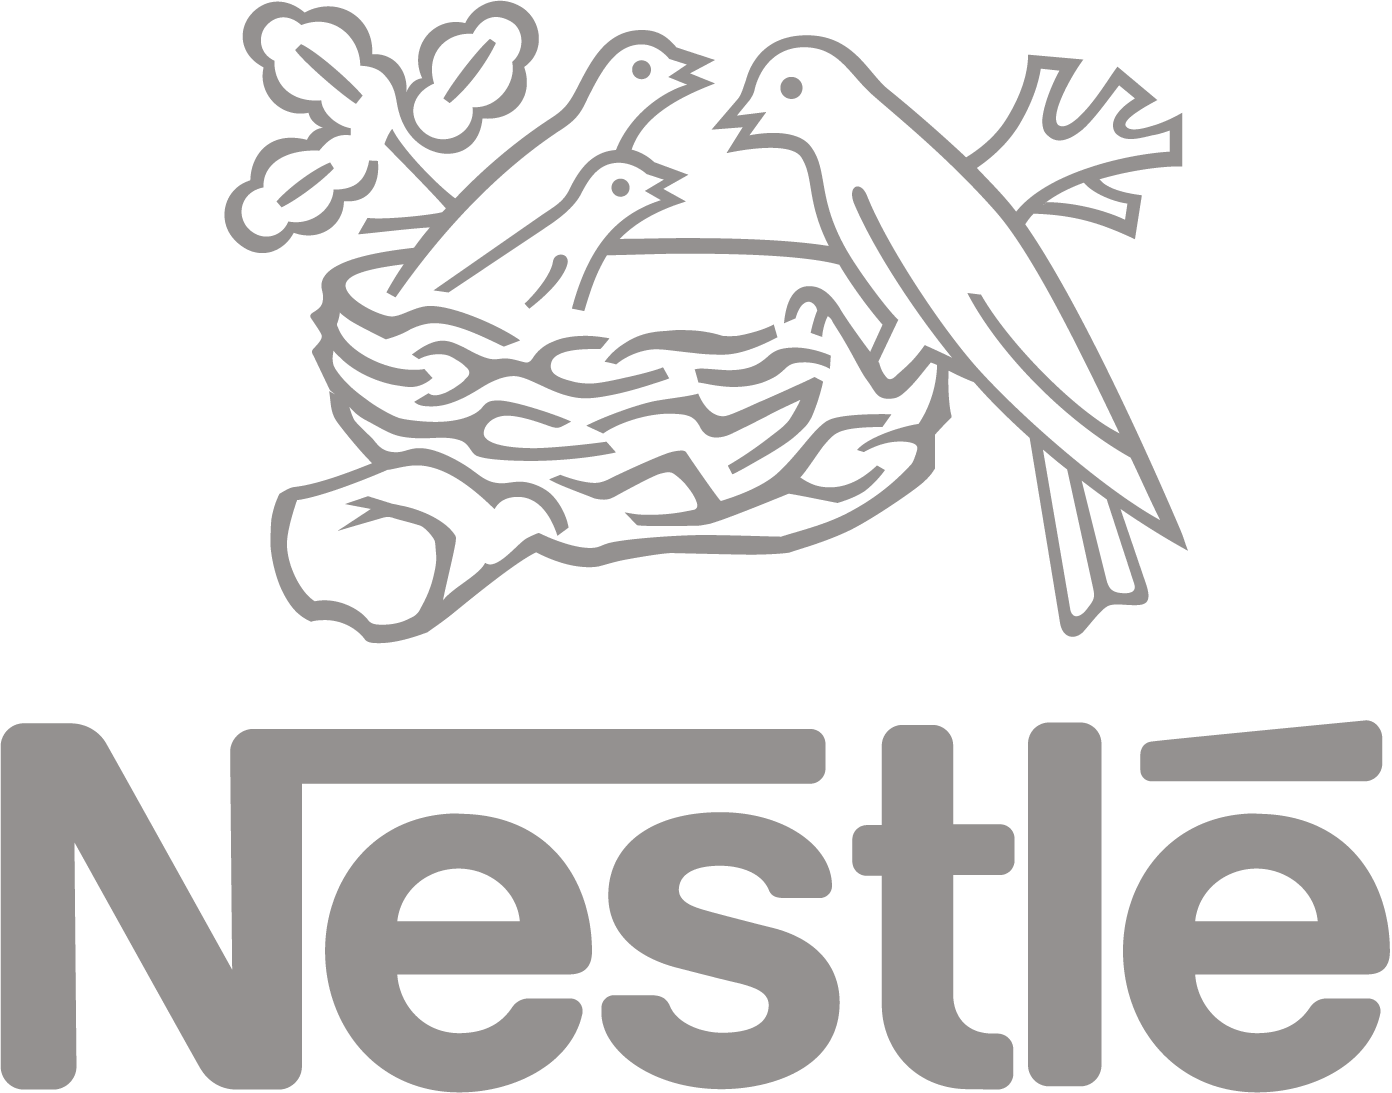 research proposal of nestle company Need essay sample on e-commerce for nestle be preliminary done using surveys and other forms of research of nestle the nestle company underwent a.